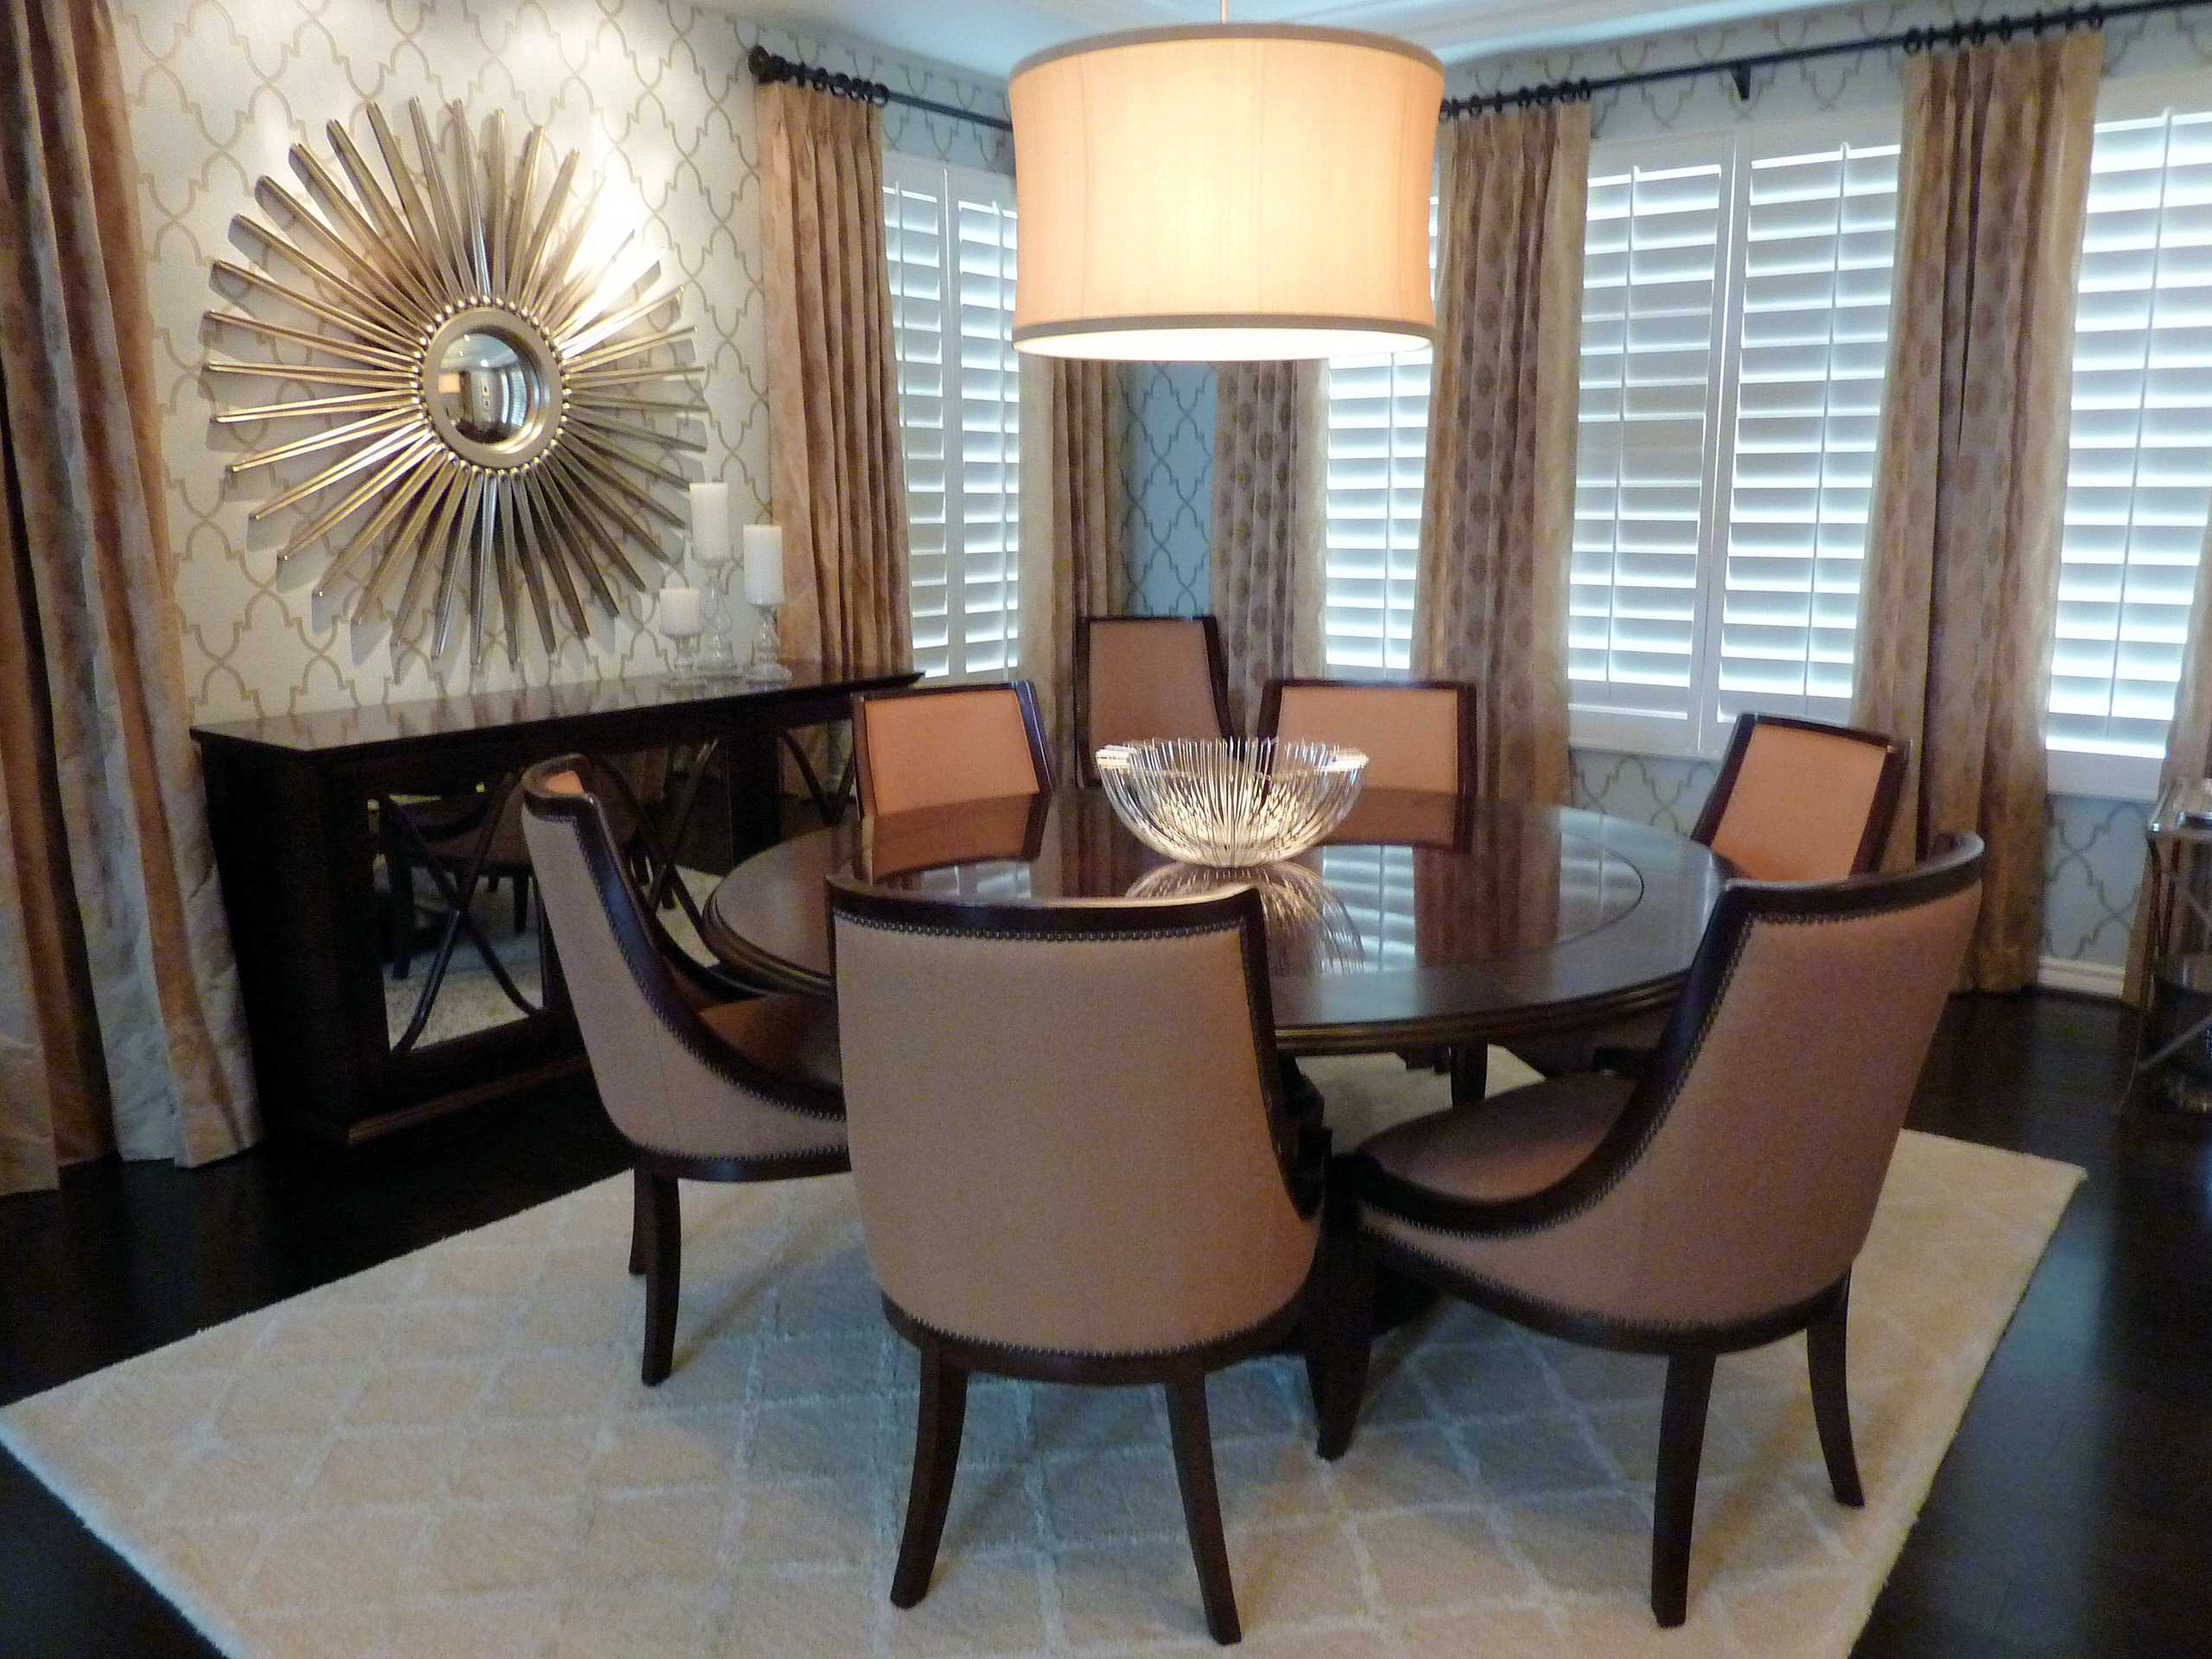 Traditional dining room furniture - Awesome Room Decorating Using Sunburst Mirrors Glamour Dining Room Design With Sunburst Mirrors And Wallpaper